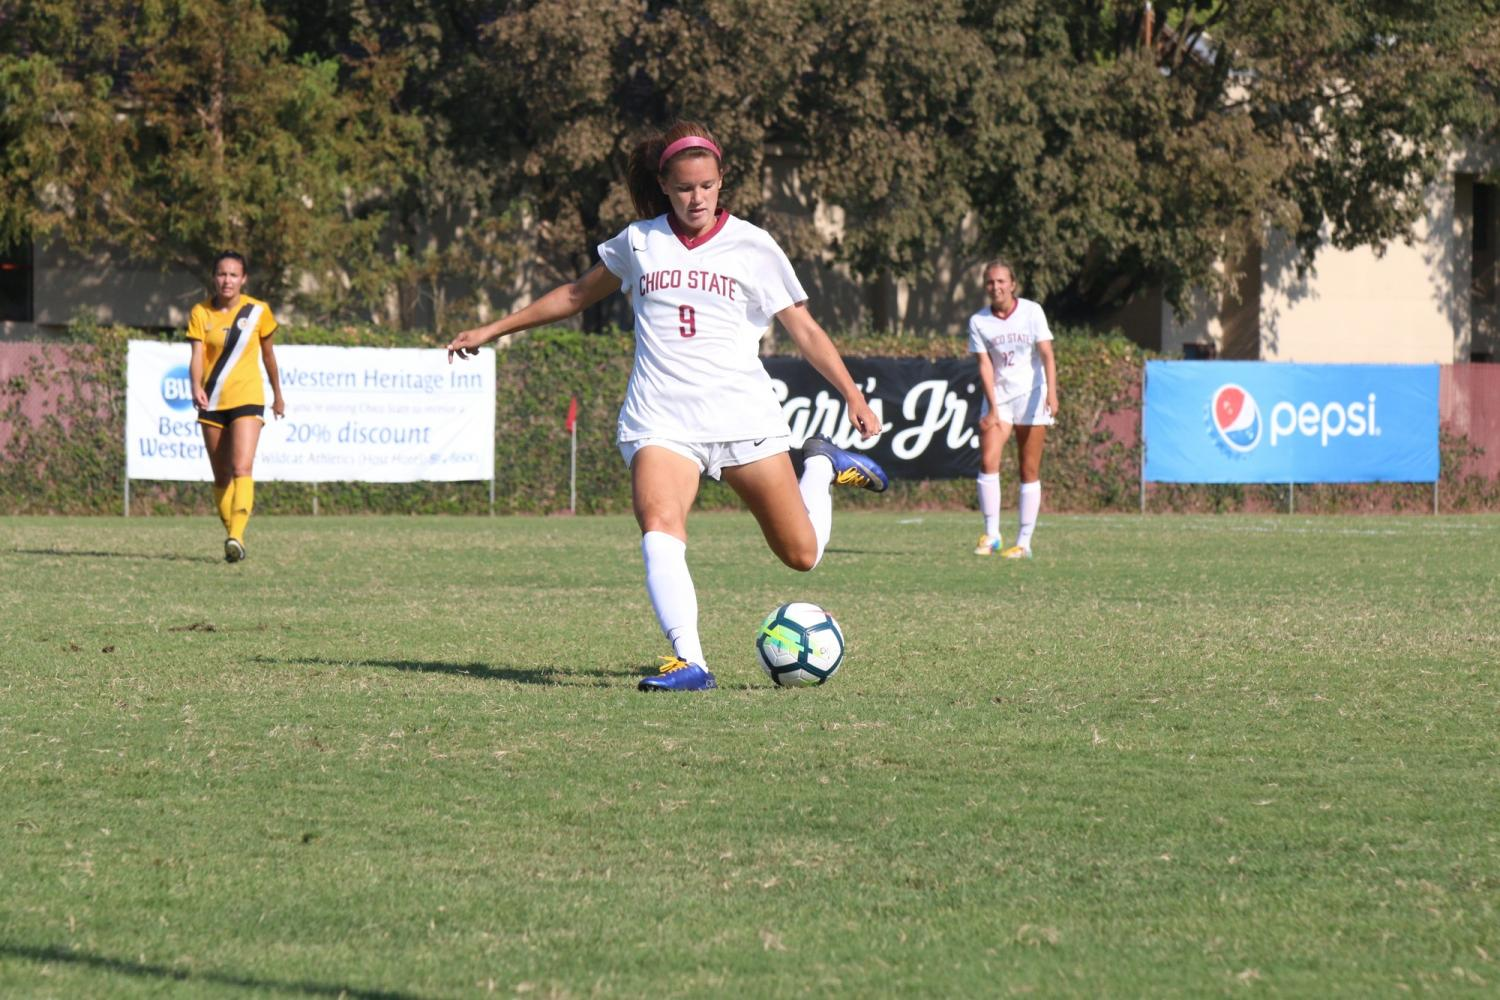 Junior forward Korie Bozart kicks the ball after a stoppage in play. Photo credit: Lamar Lomack